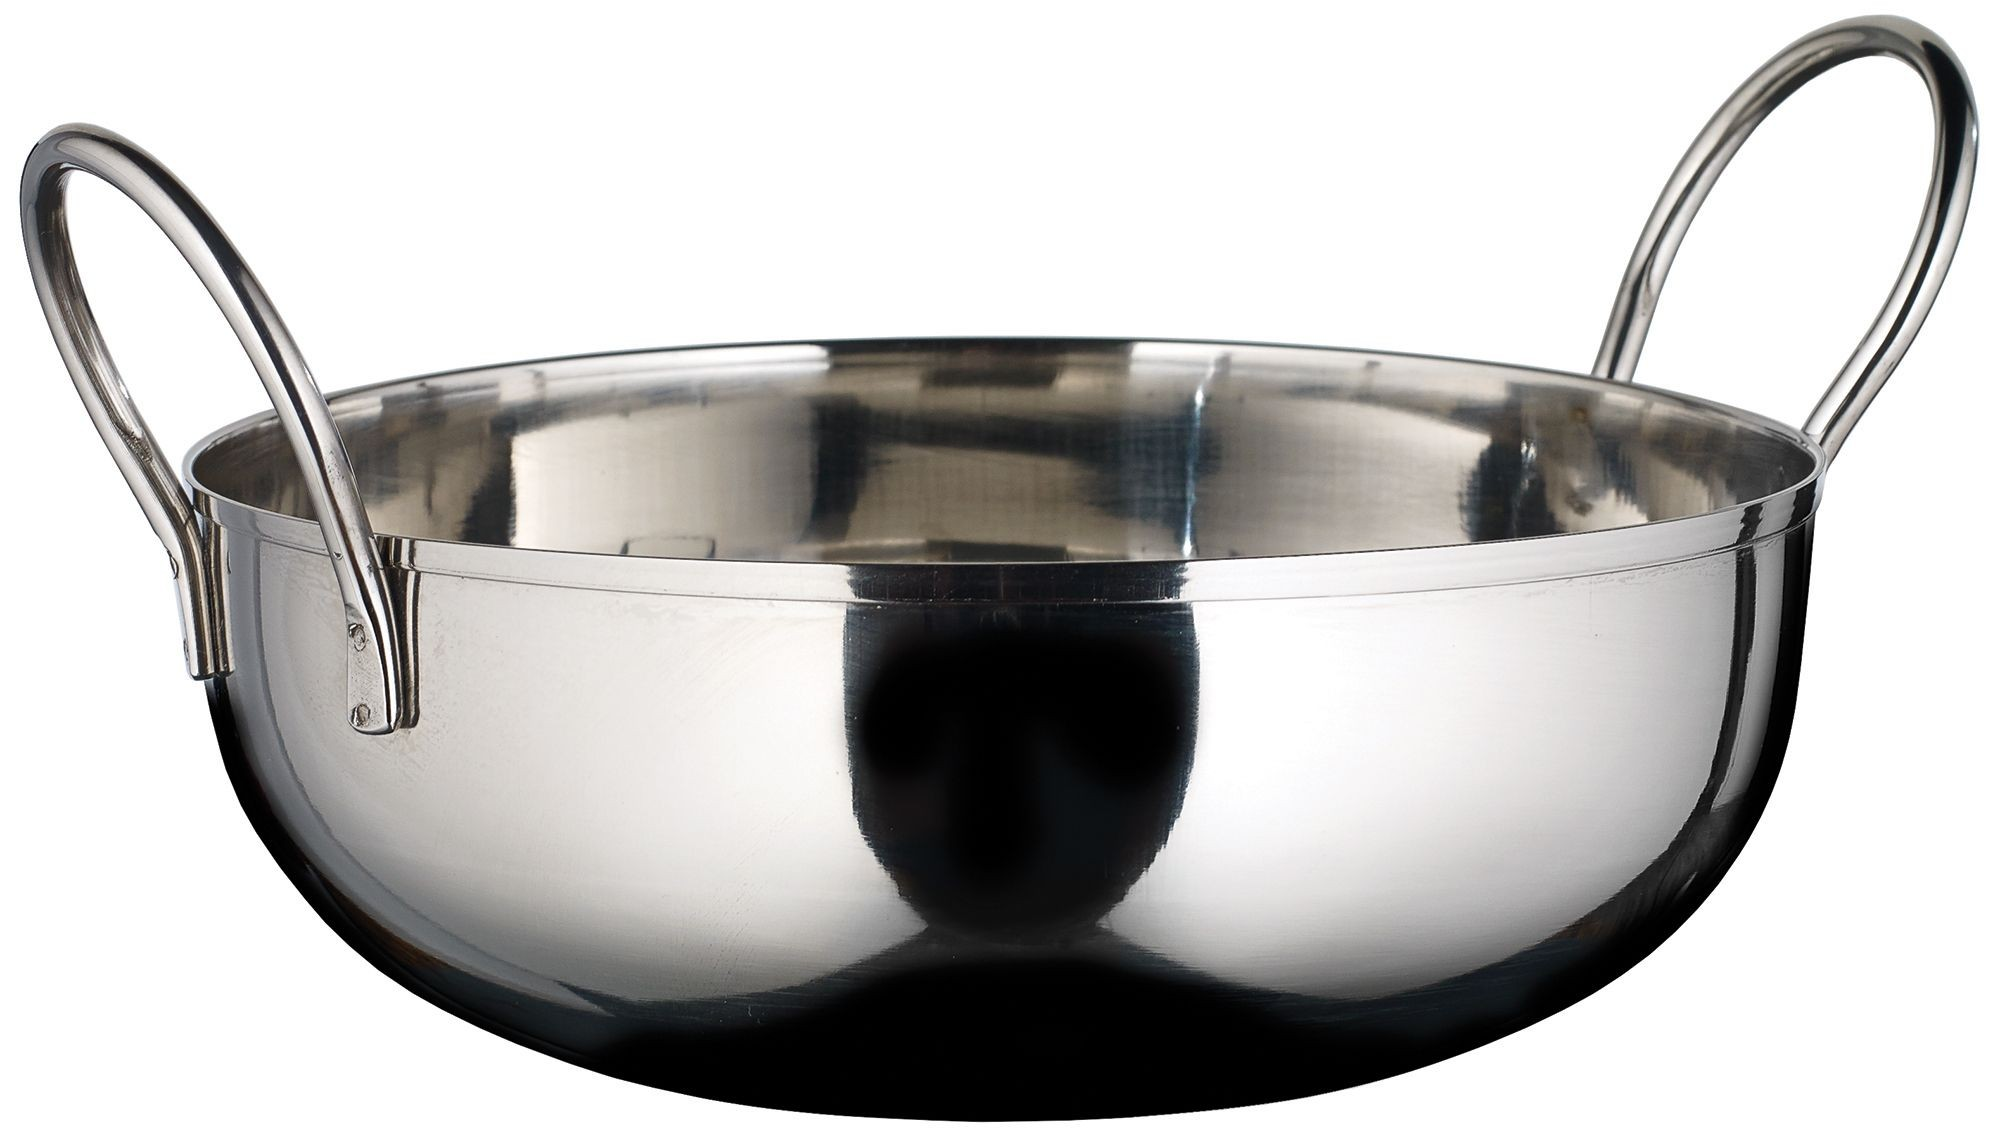 Winco KDB-7 Stainless Steel 40 oz. Kady Bowl with Welded Handles